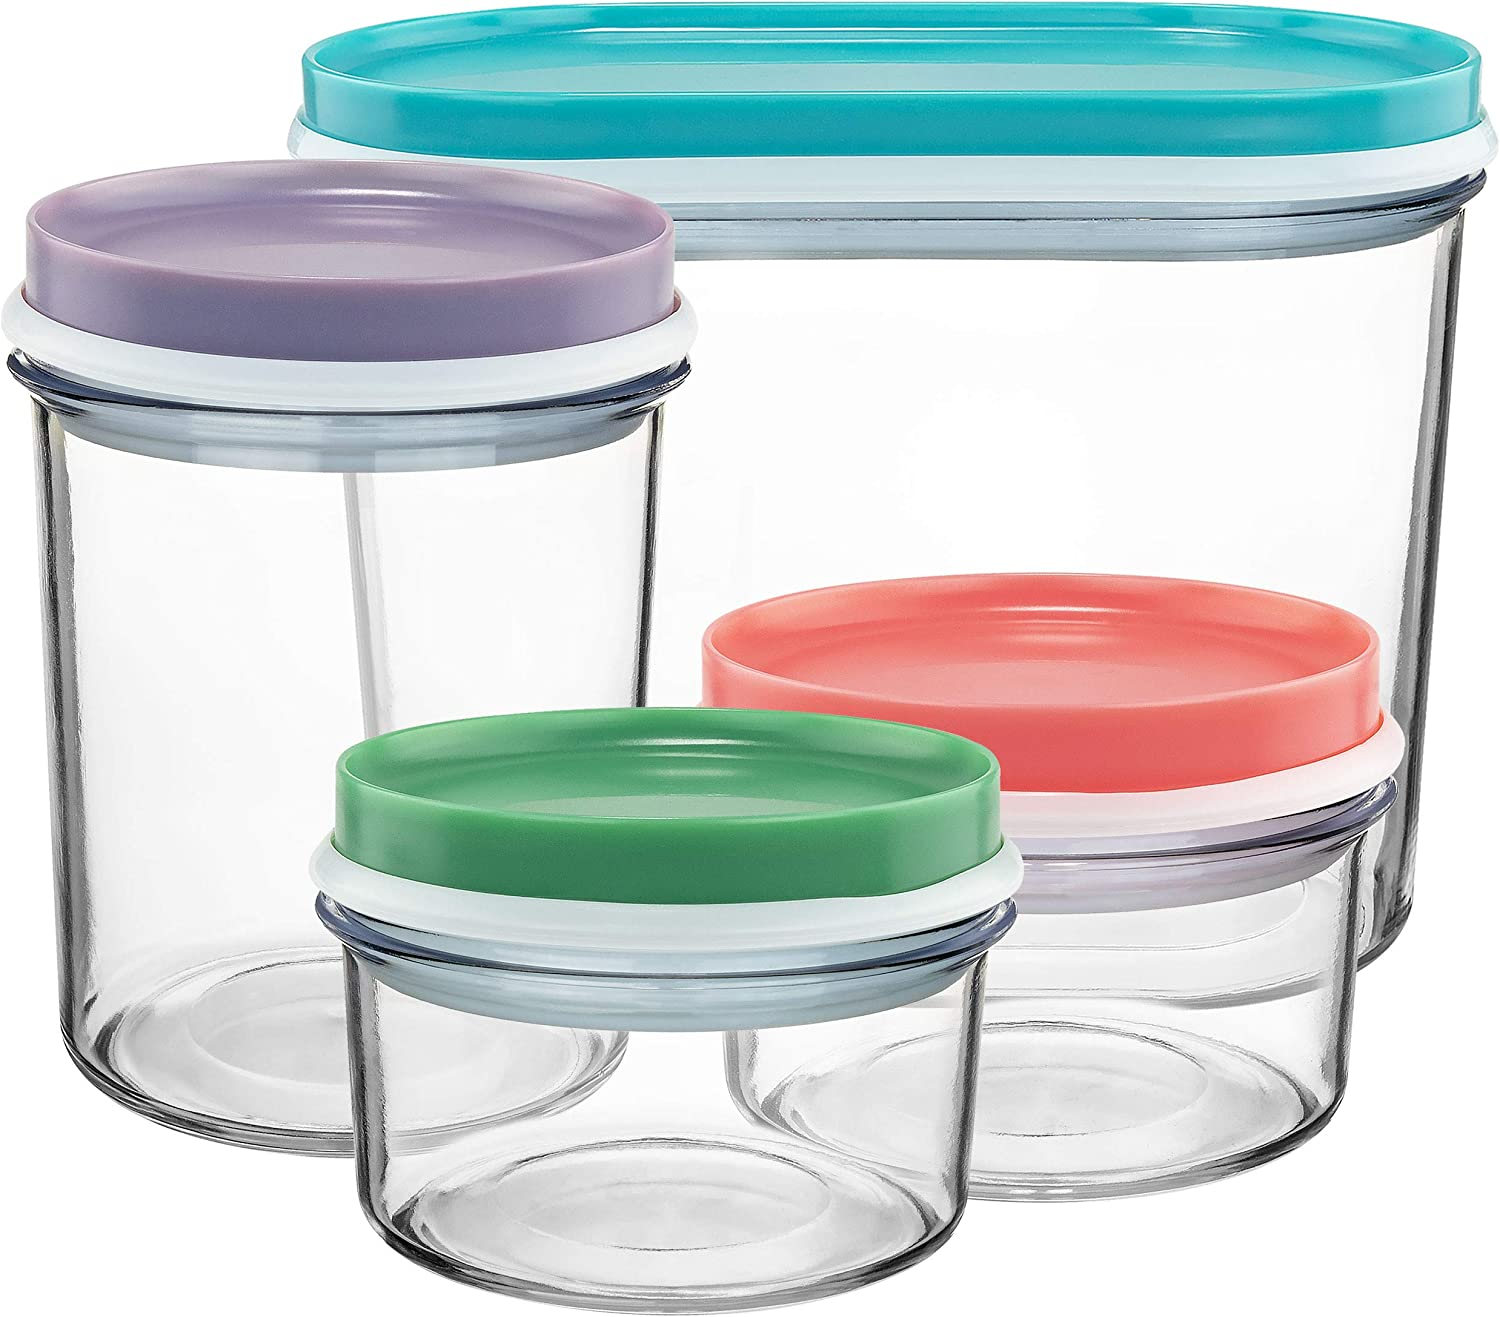 Nestable Food Storage Containers, Set of 4